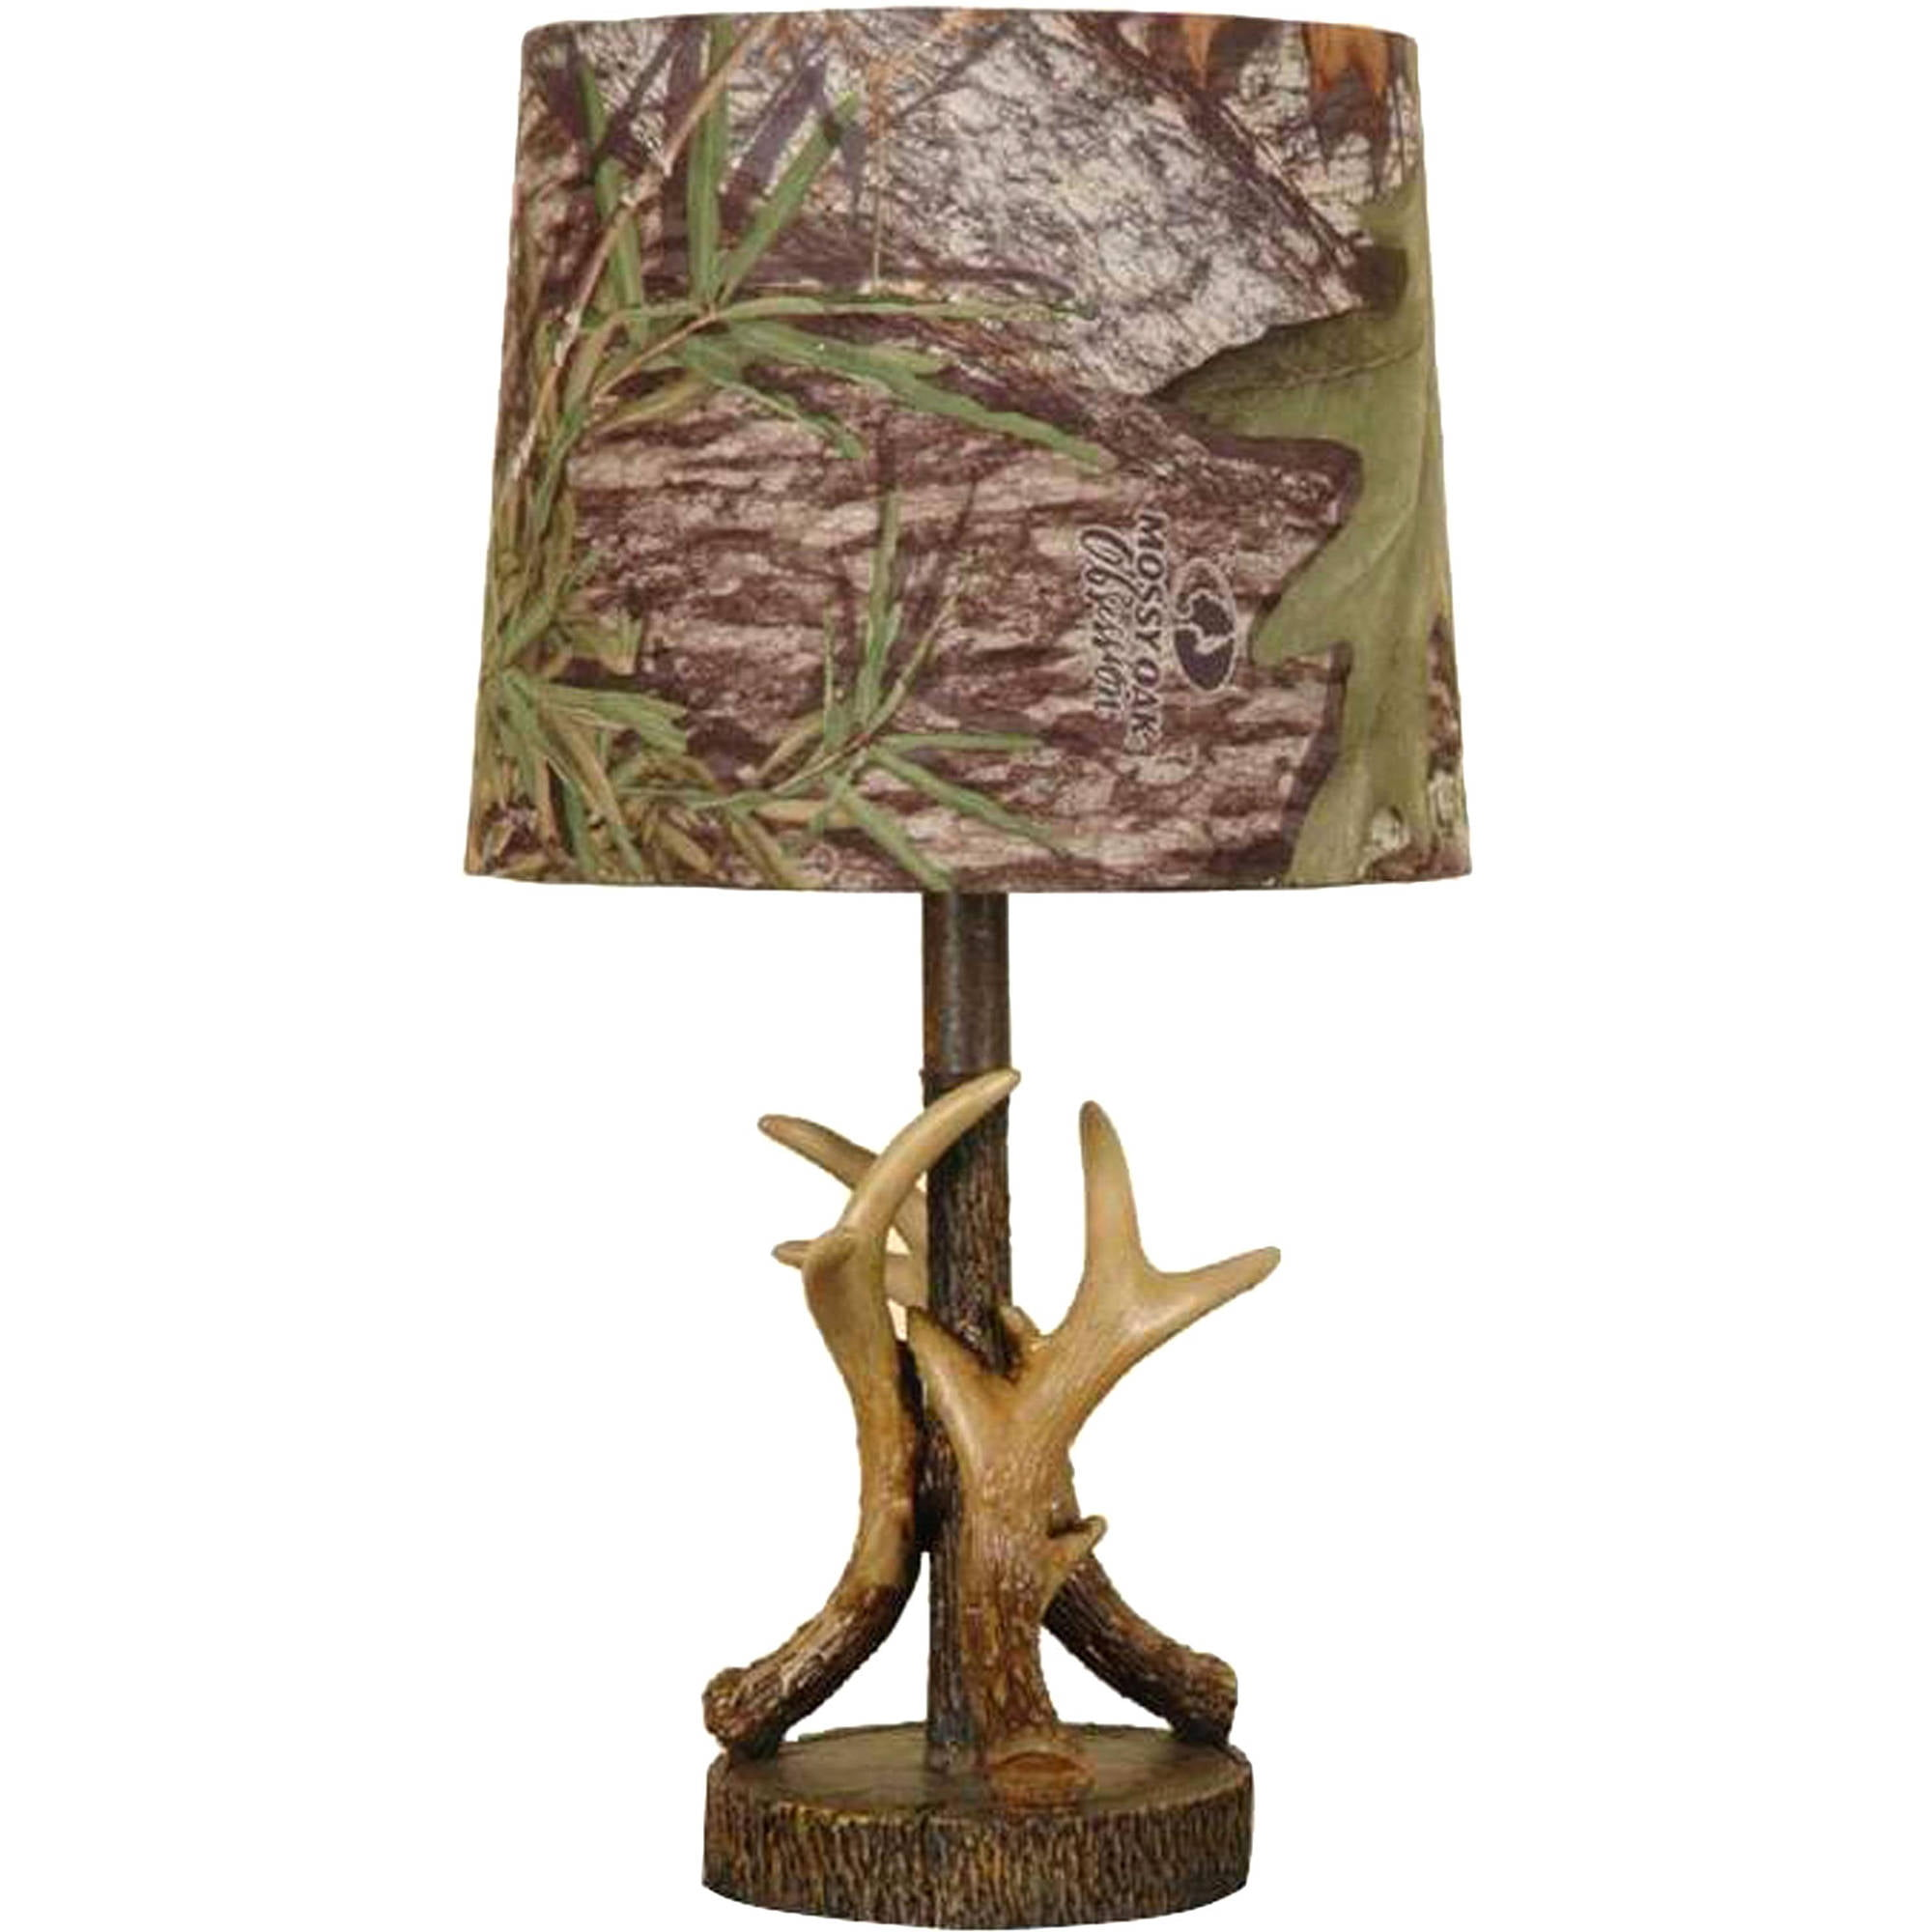 Mossy Oak Deer Antler Accent Lamp, Dark Woodtone - Walmart.com